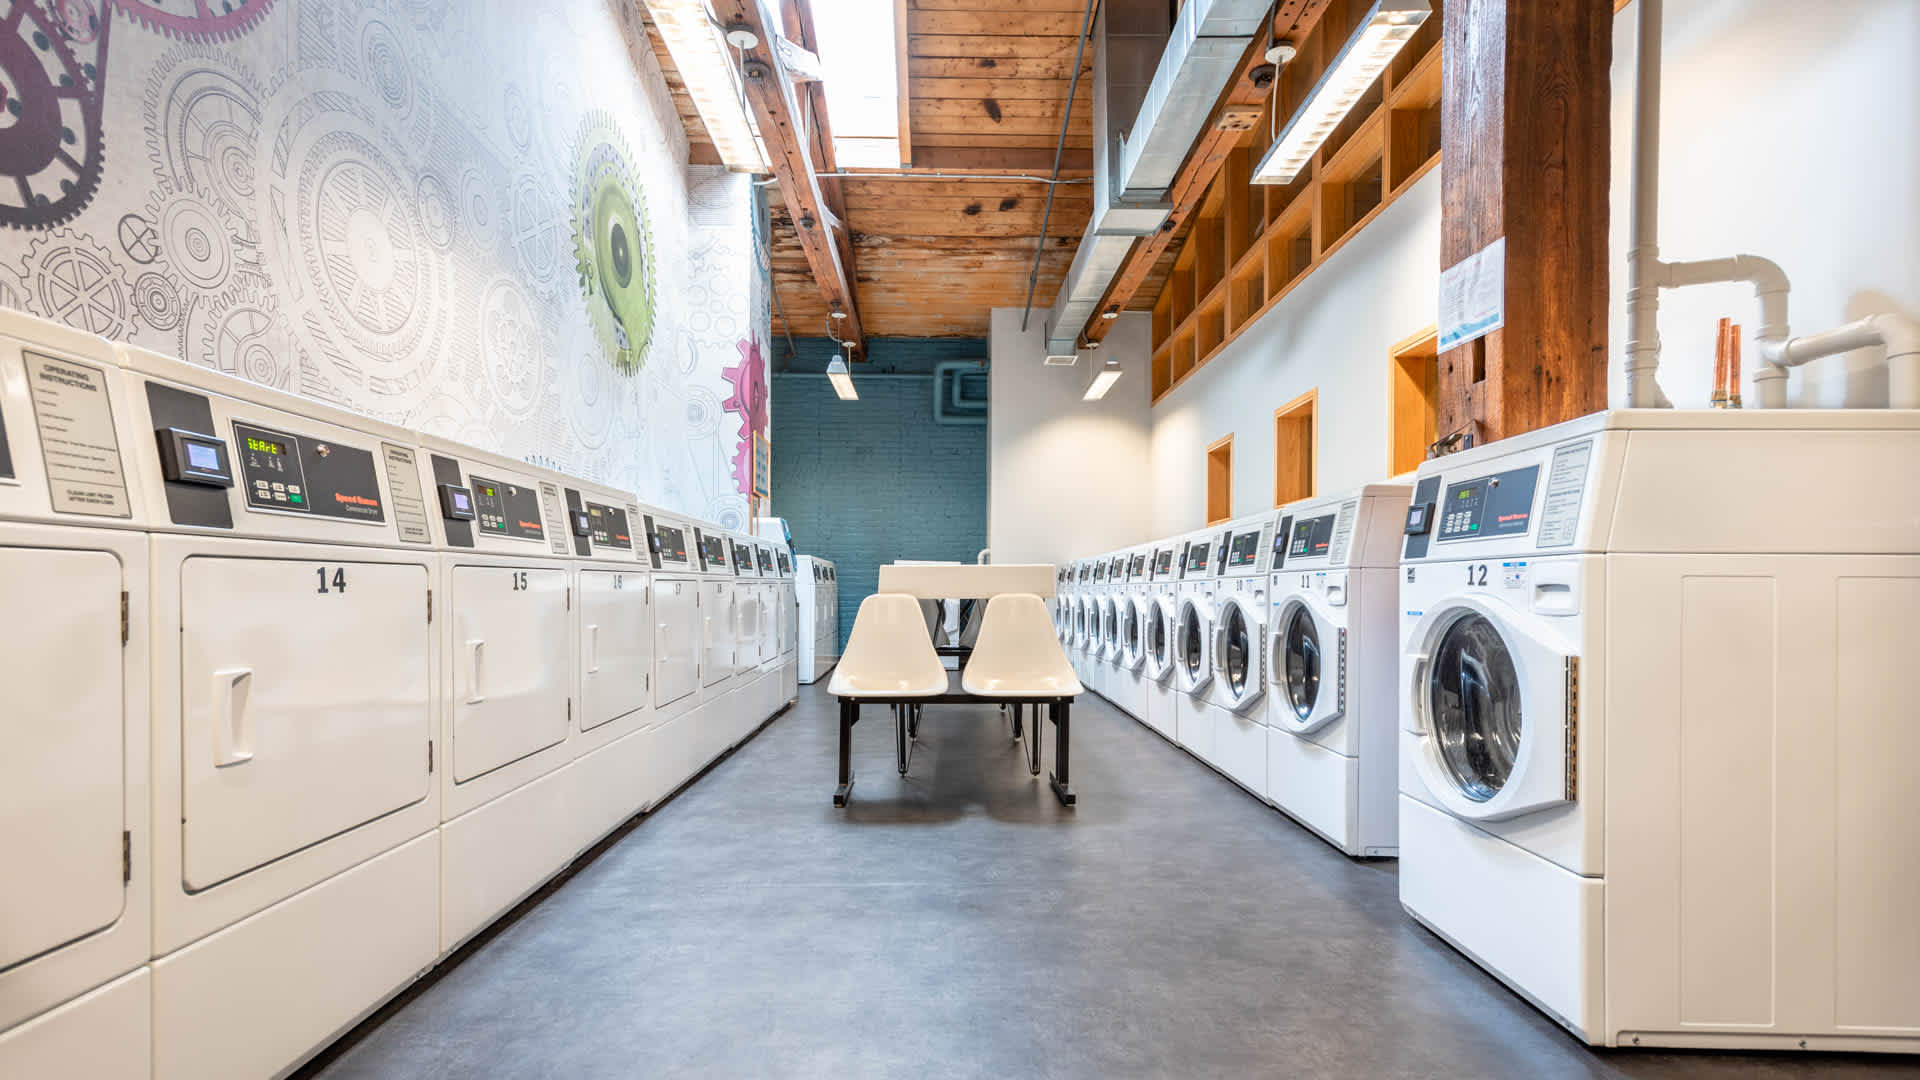 Lofts at kendall square apartments laundry room